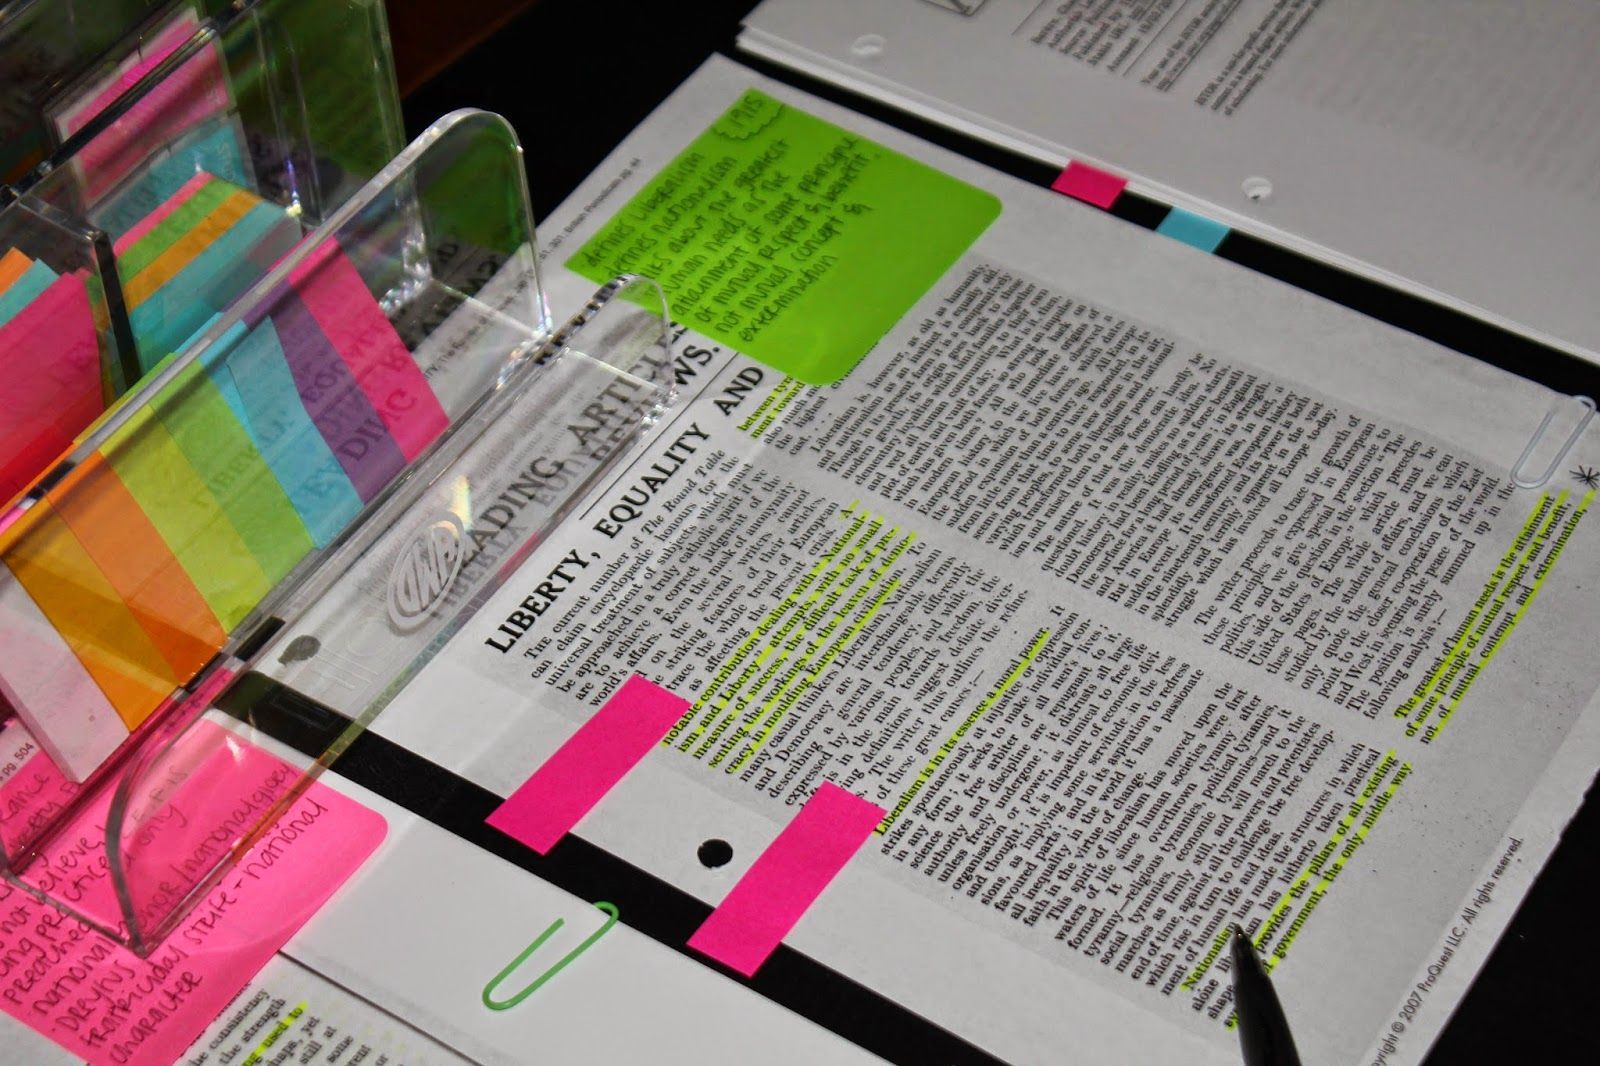 Masters thesis research notes organization